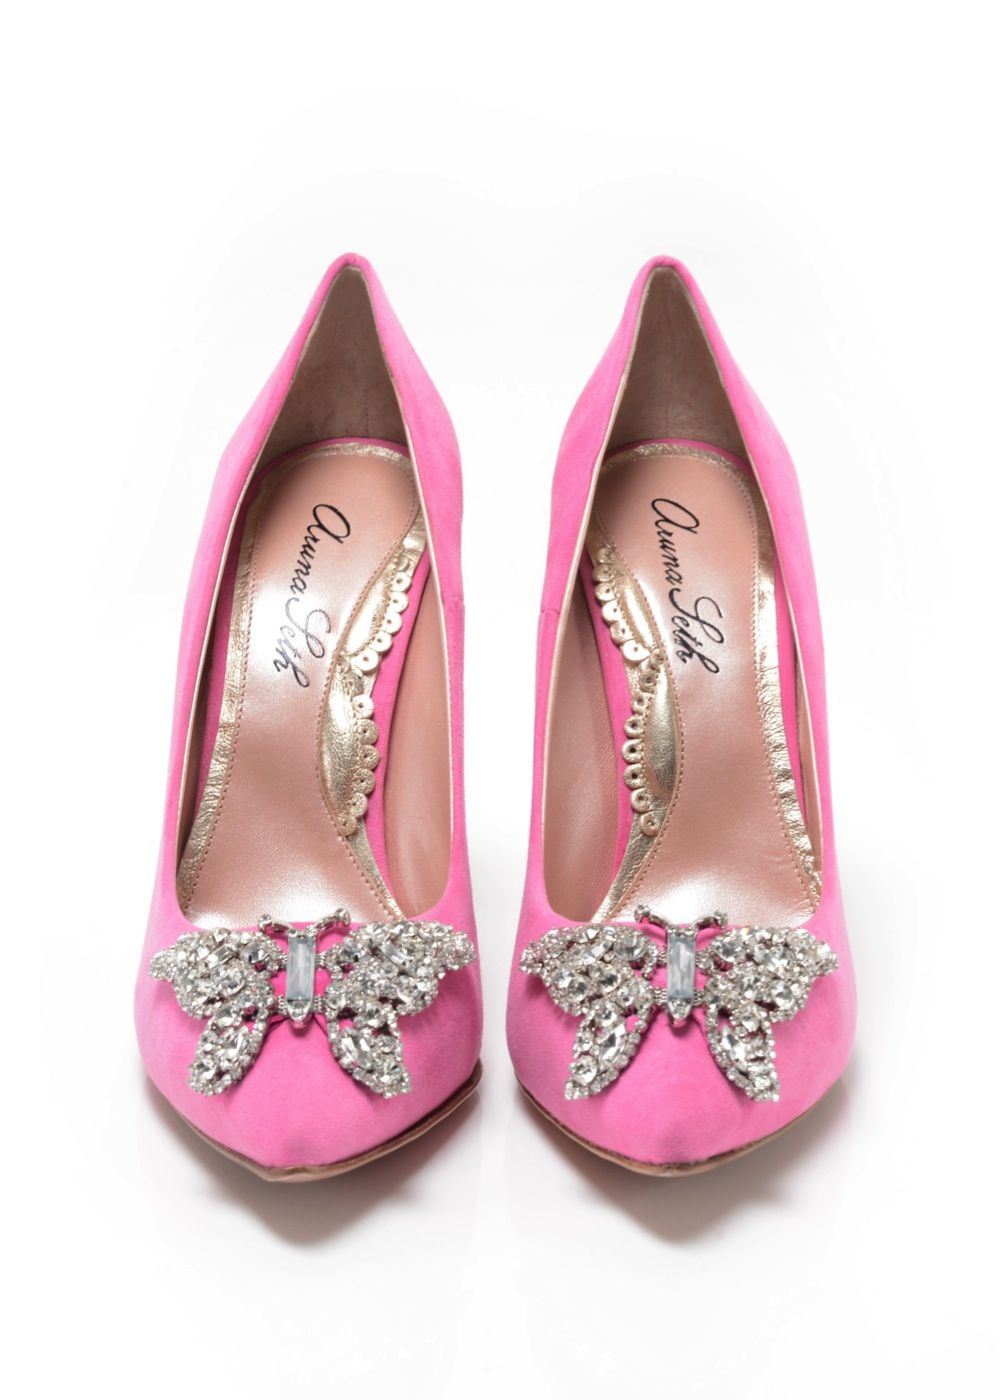 12 Seriously Cool Wedding Shoes